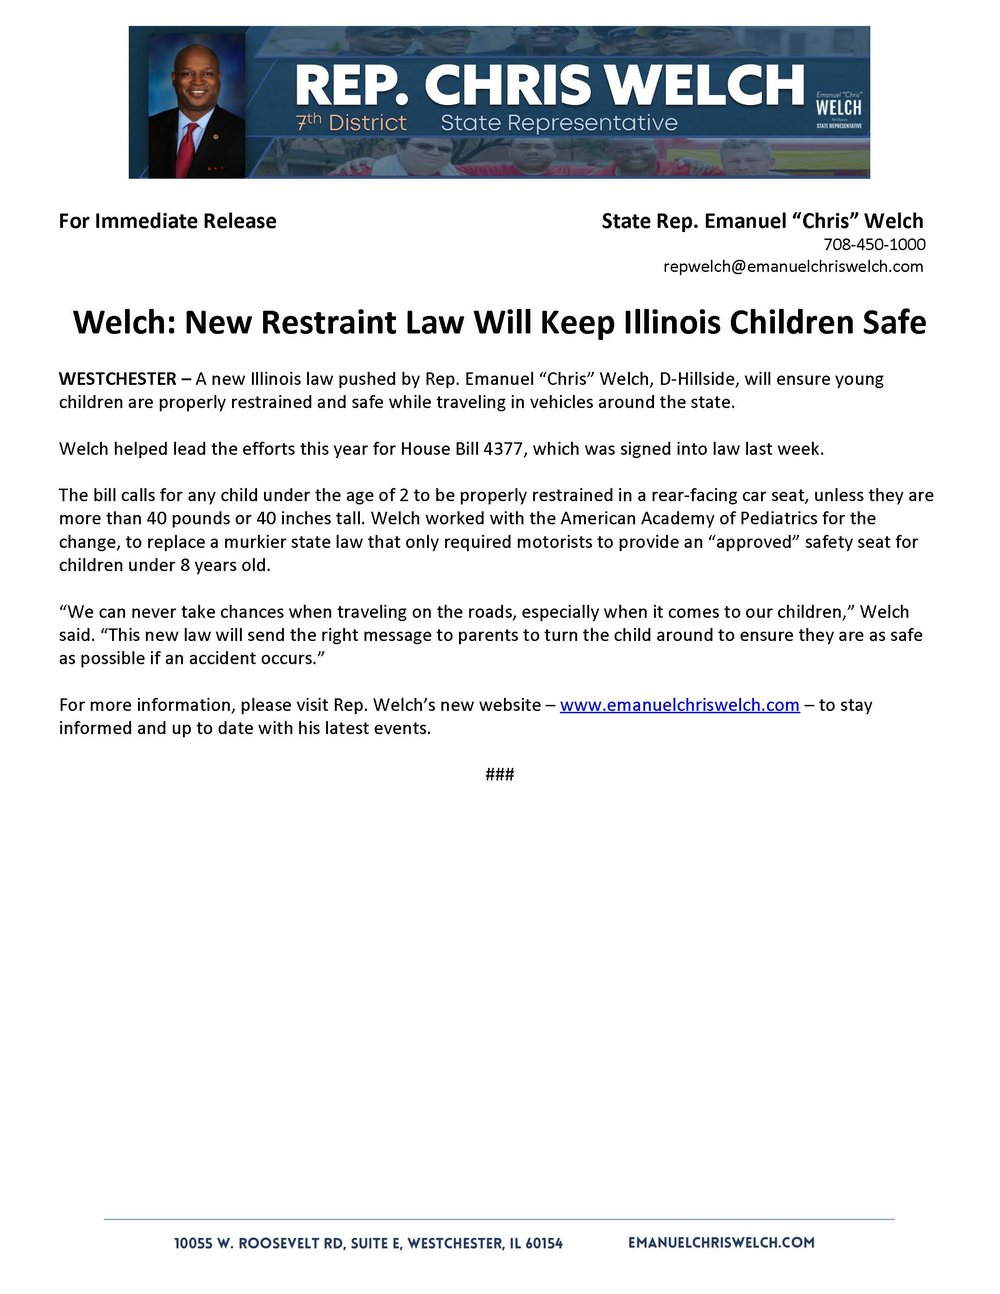 Welch: New Restraint Law Will Keep Illinois Children Safe  (August 10, 2018)